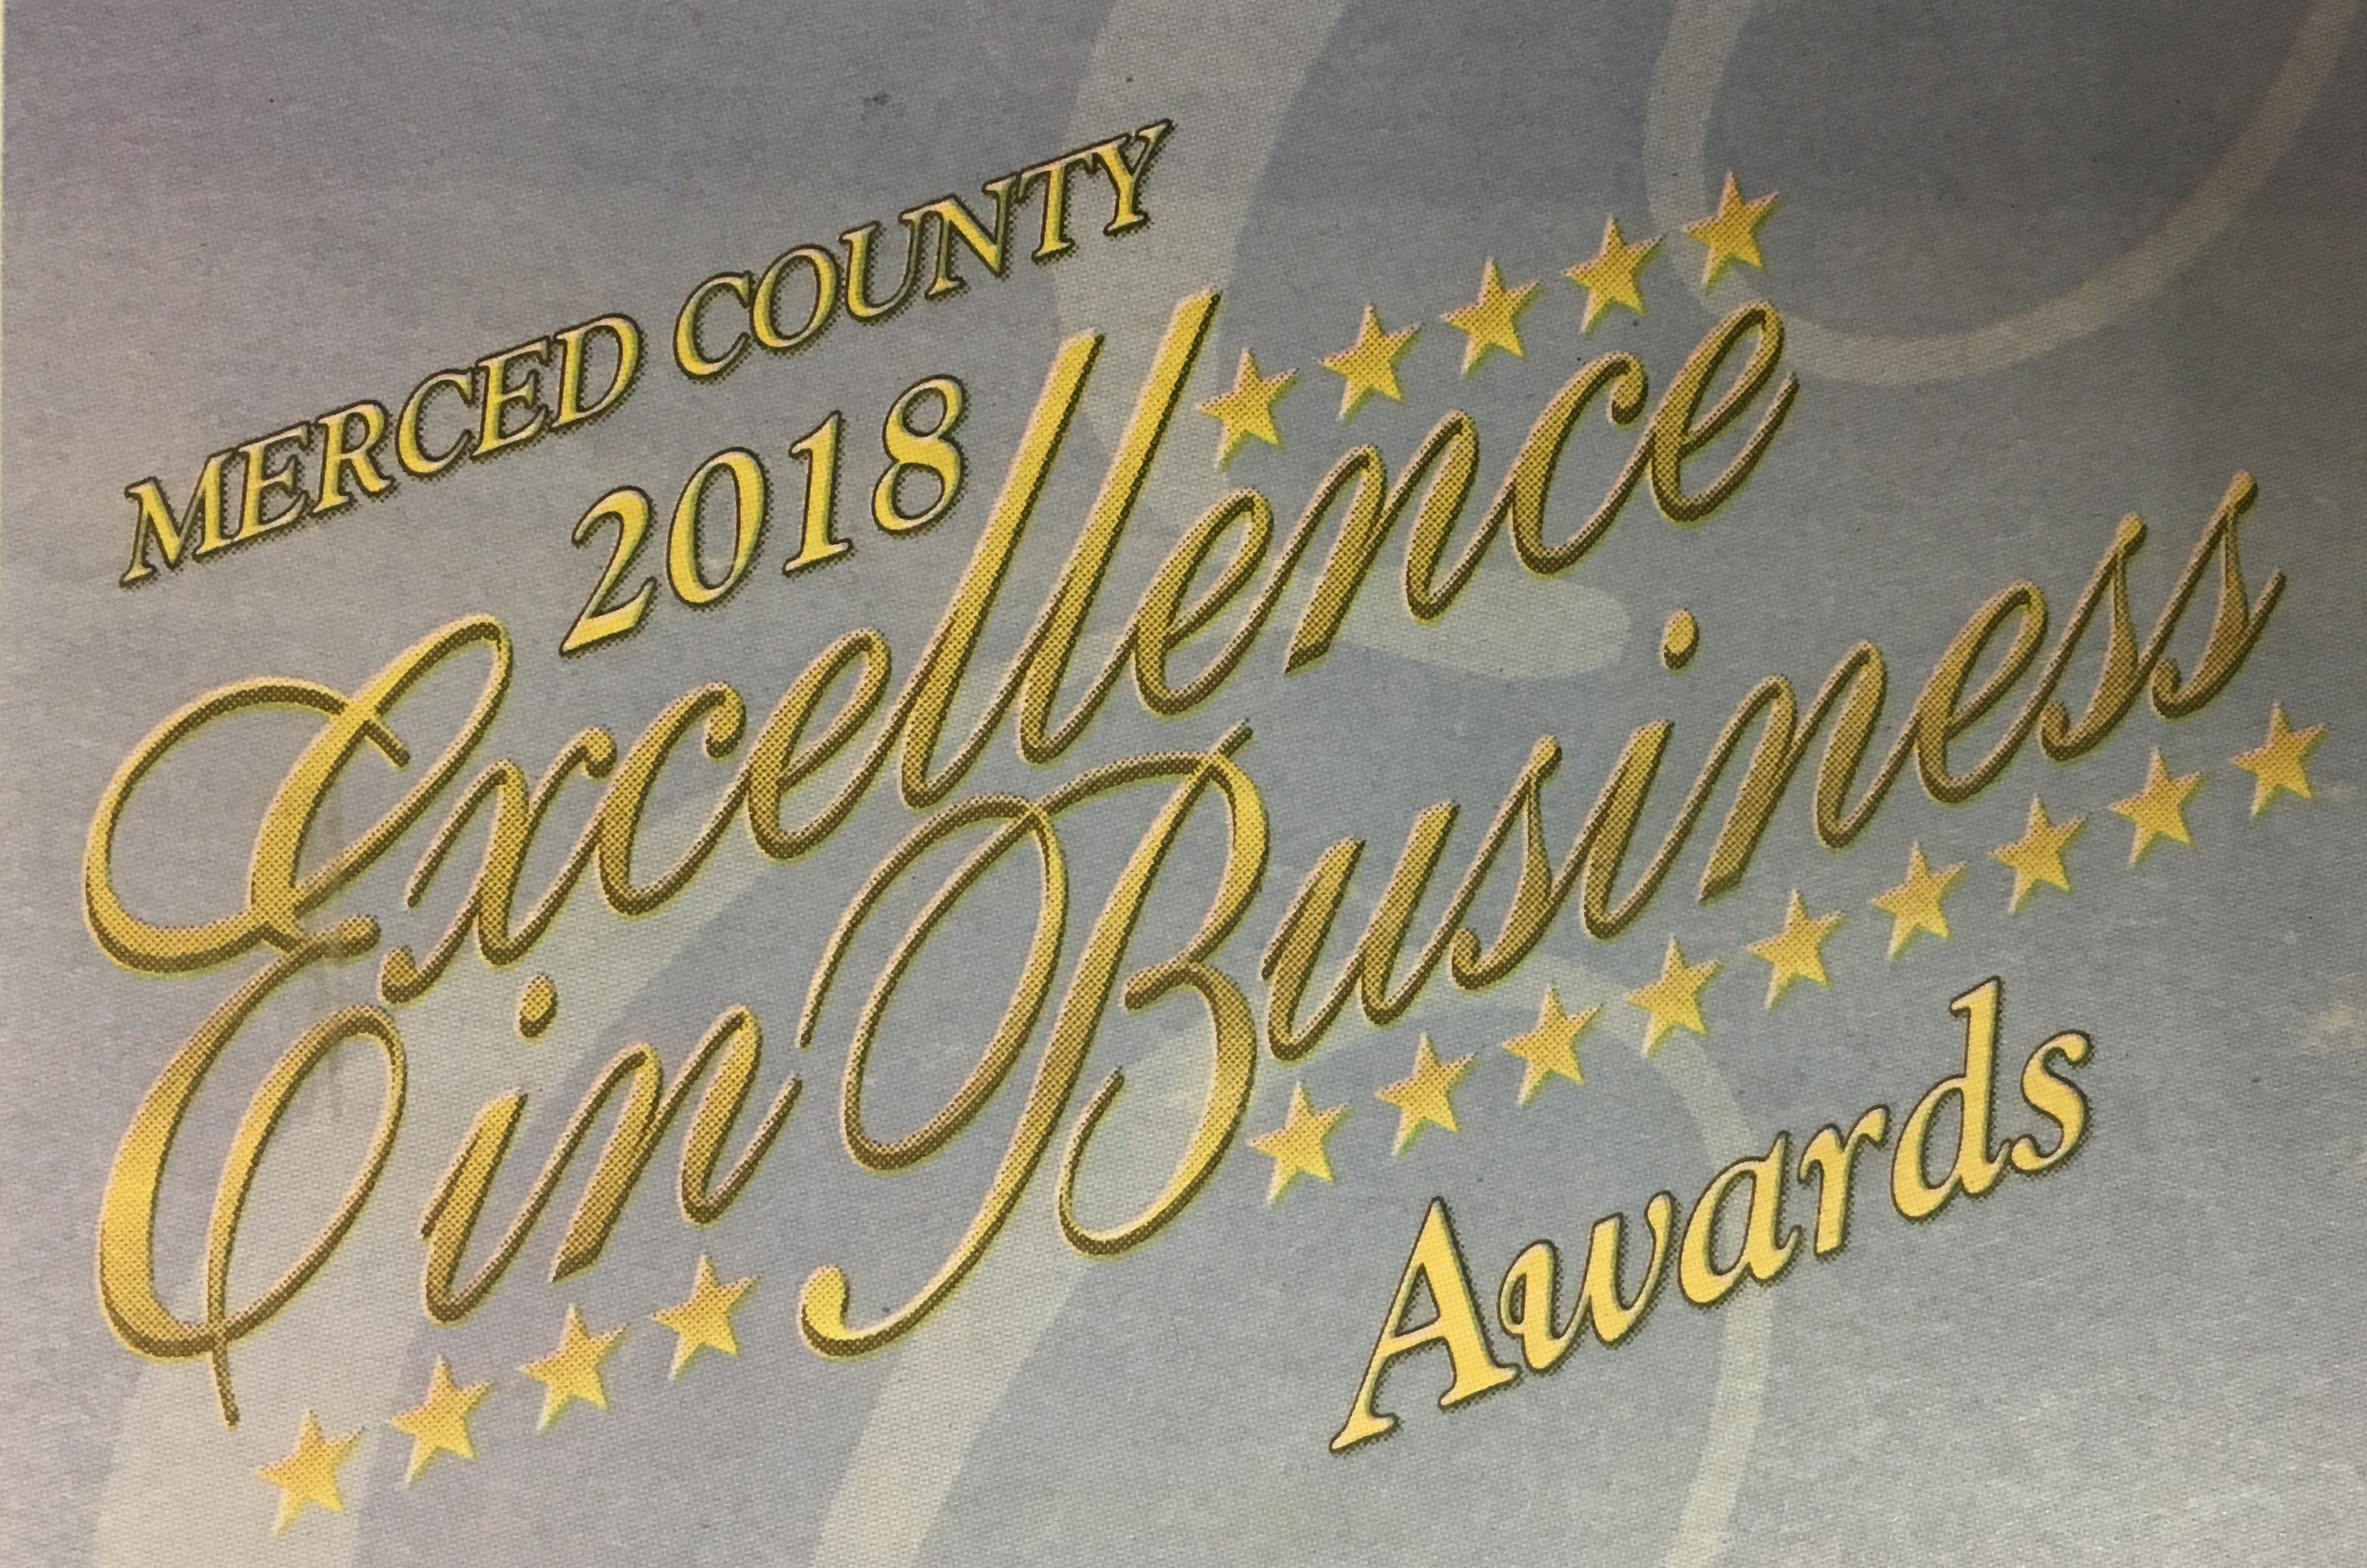 Merced County 2018 Charitable/Nonprofit Excellence in Business Award